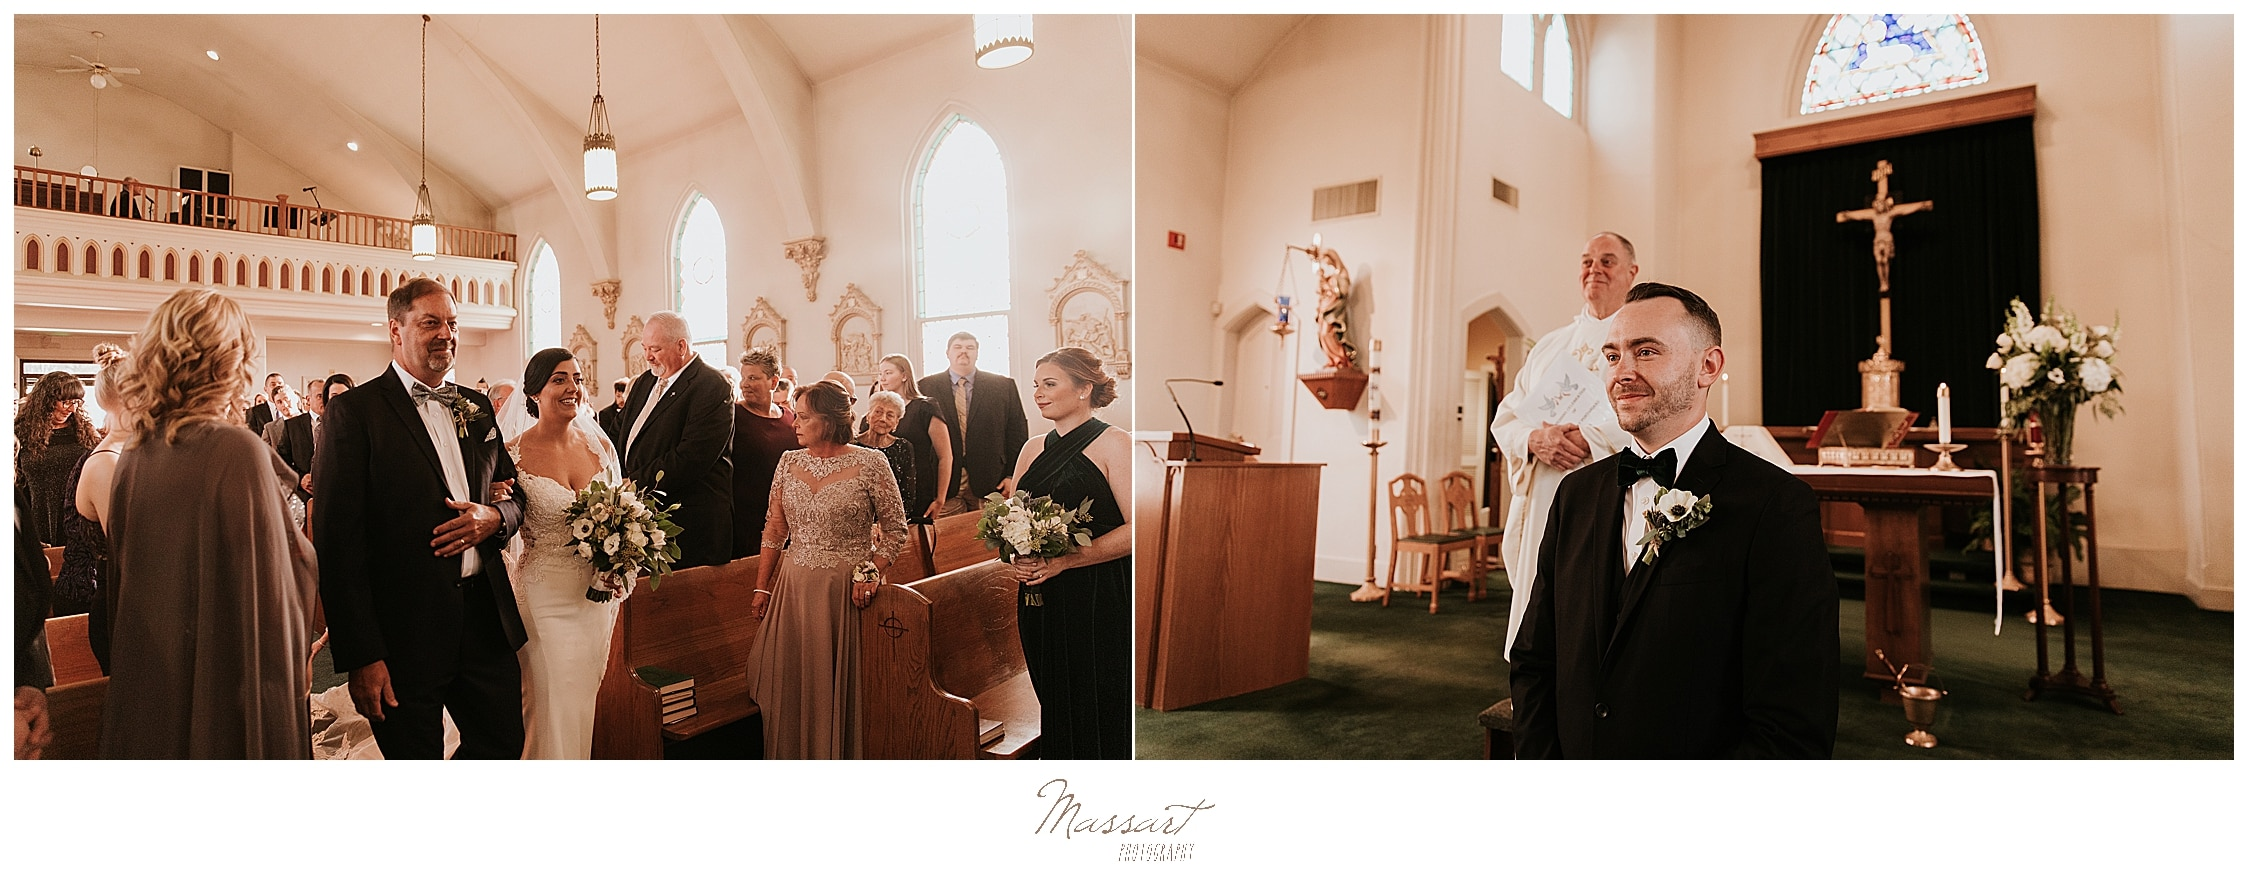 wedding ceremony in St. Ambrose Church in Lincoln photographed by Massart Photography